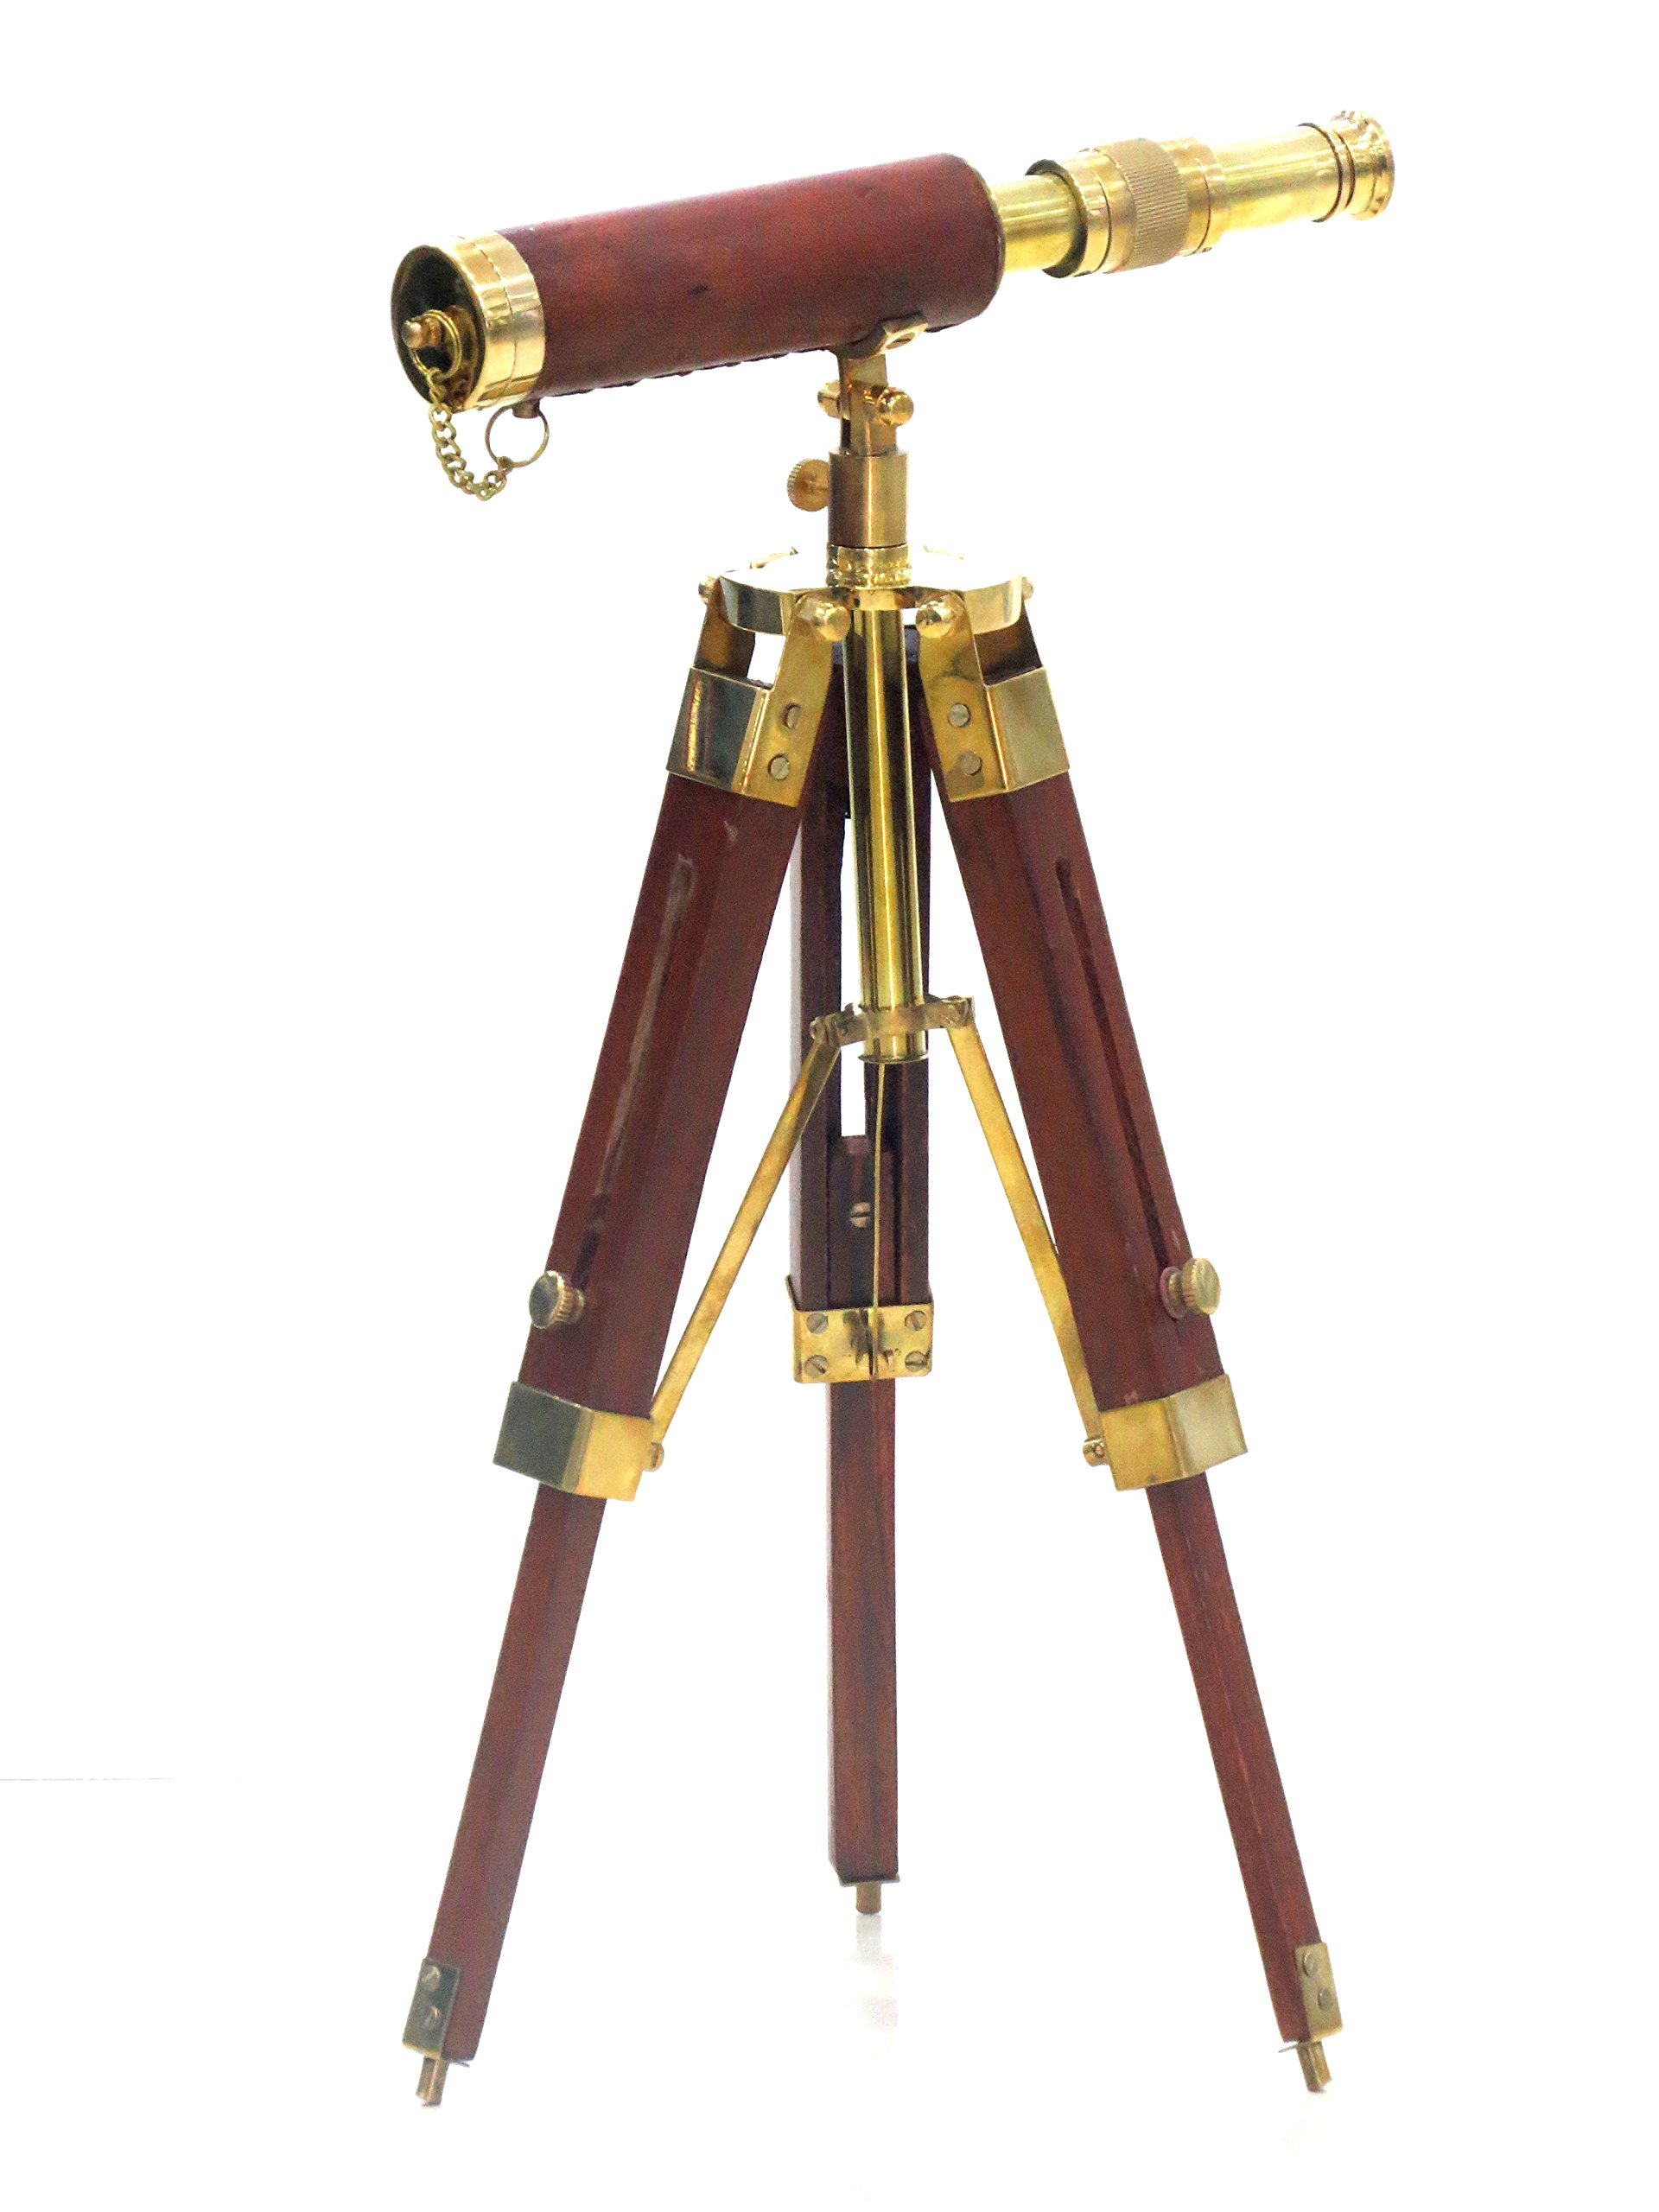 Solid Brass Telescope with Wooden Tripod Stand - Gifts - Gift by Nauticalmart by NAUTICALMART